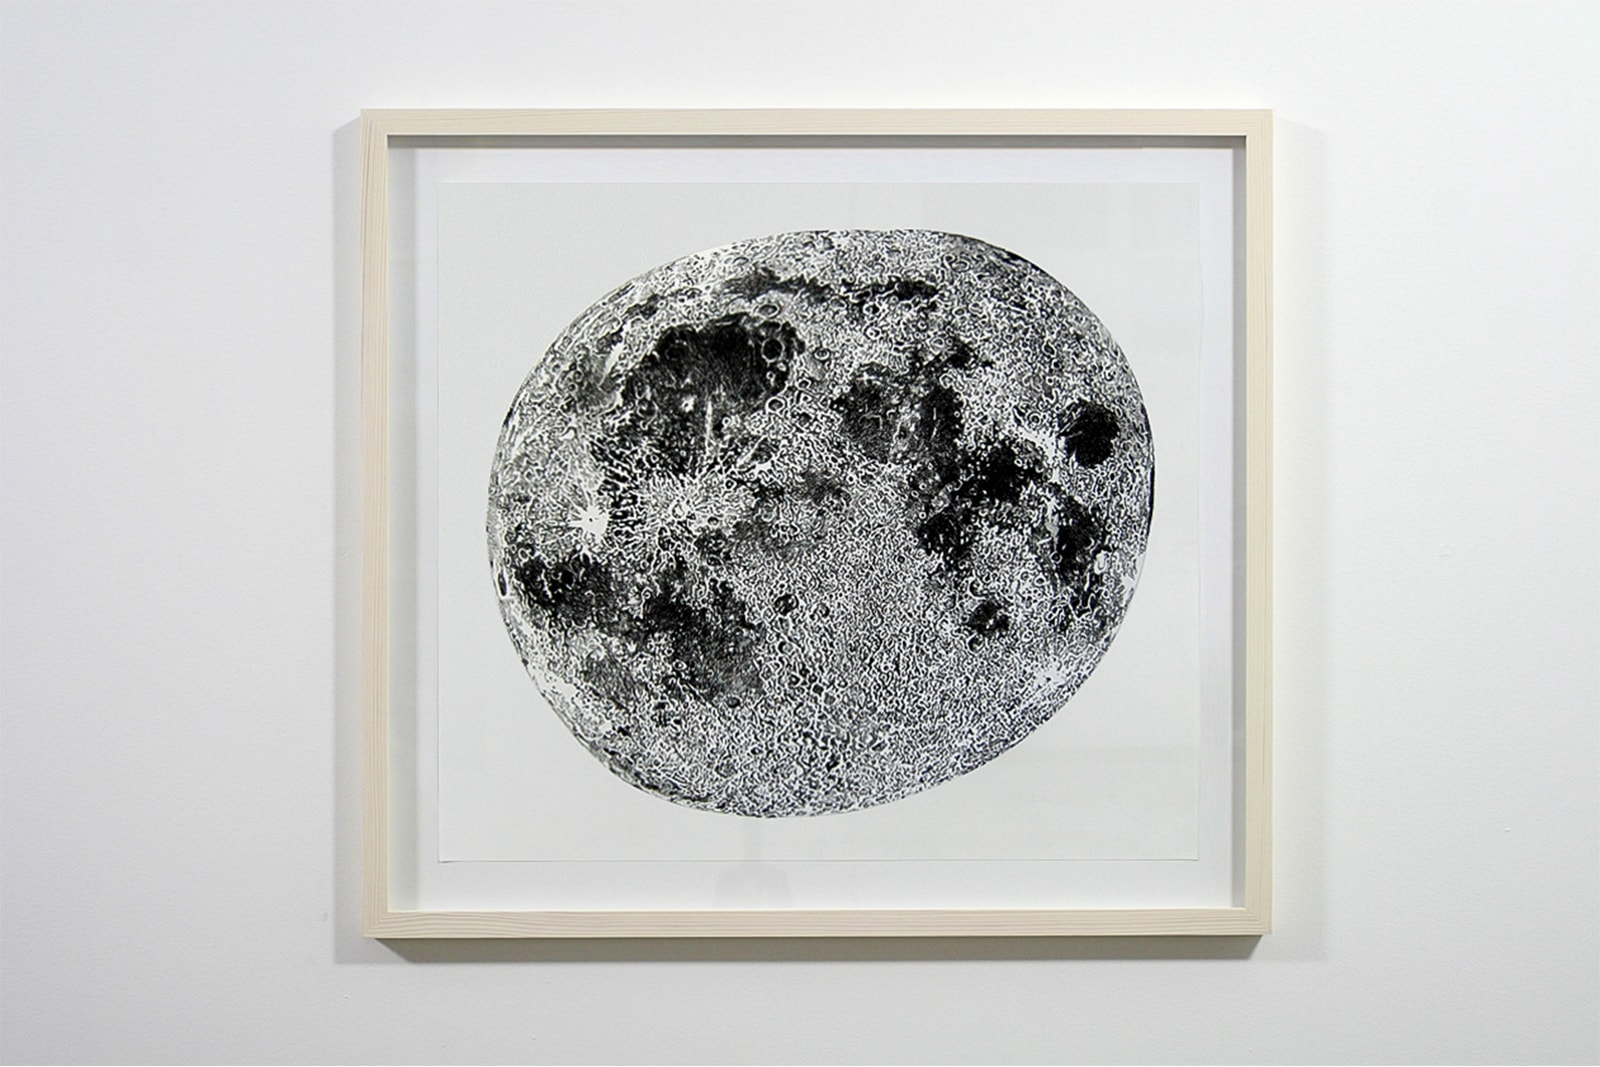 Handmade drawing of the moon - Charcoal on paper, 2008